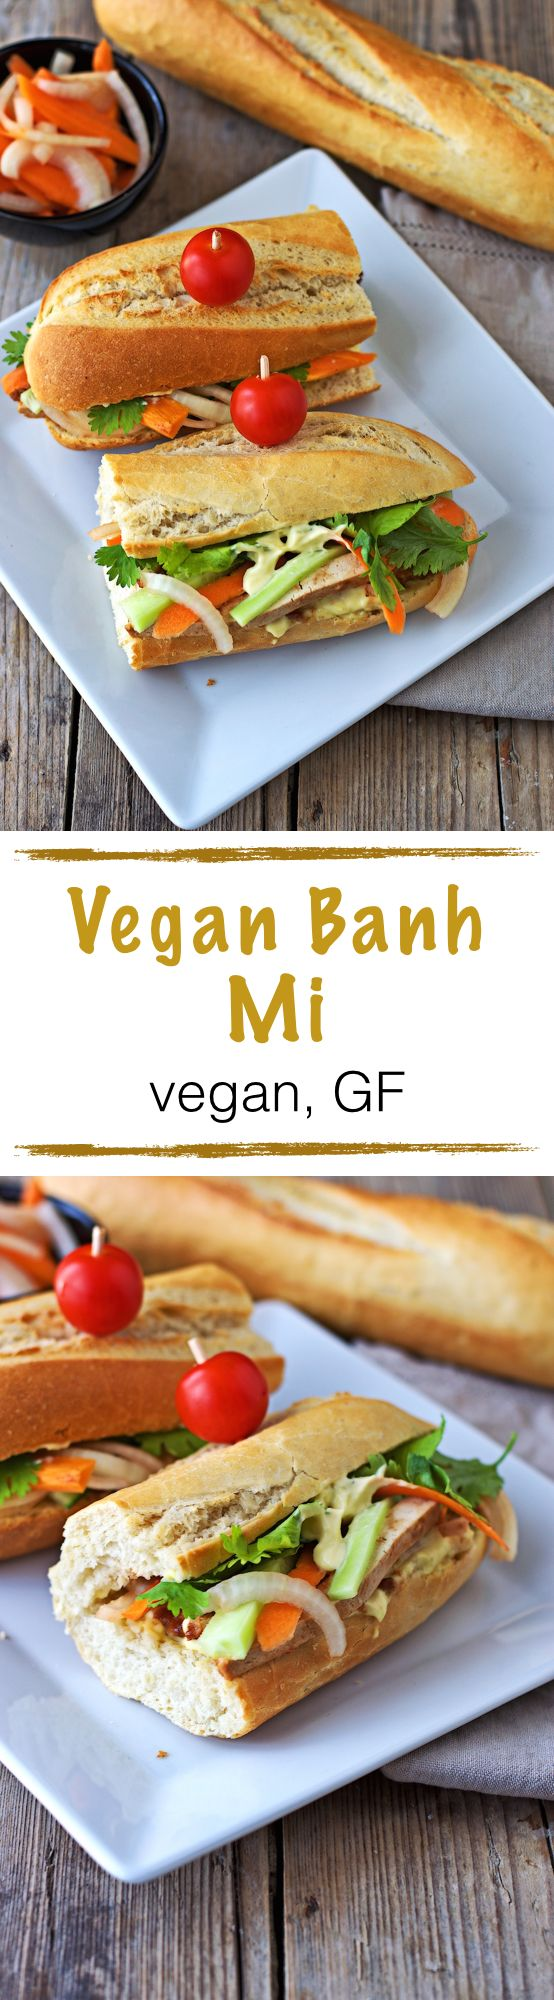 This #Vegan Banh Mi is a fresh and satisfying lunch option for people who like their fresh #glutenfree bread with a load of pickled vegetables and spicy flavors. Good to go in little time. Check it out!